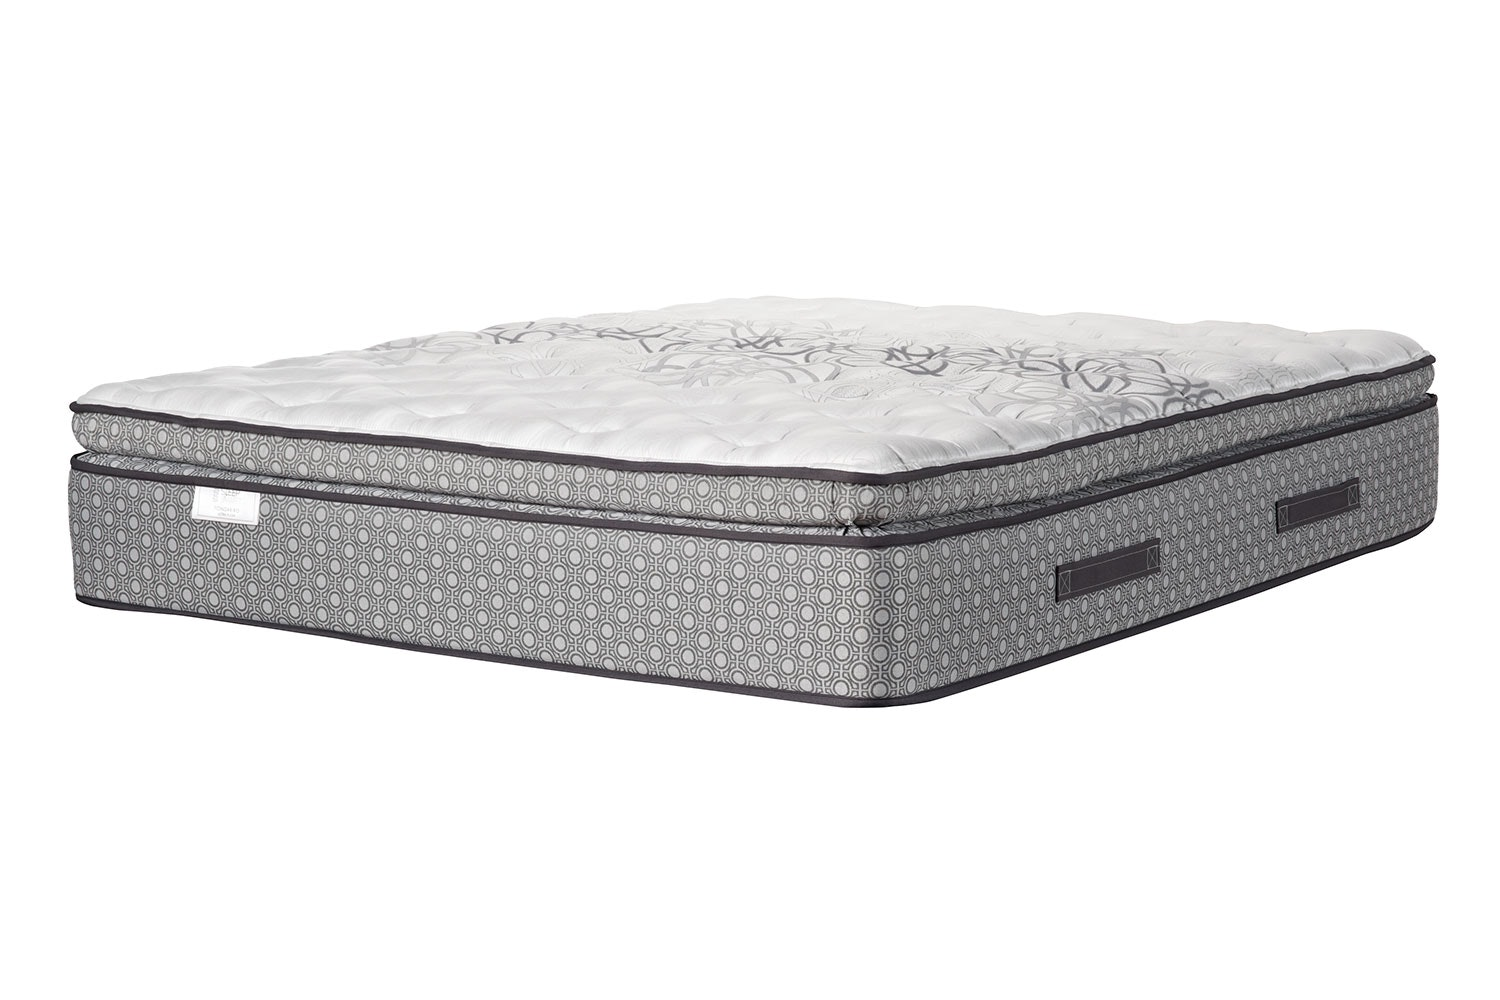 Tongariro Ultra Plush Queen Mattress by Sleep Smart